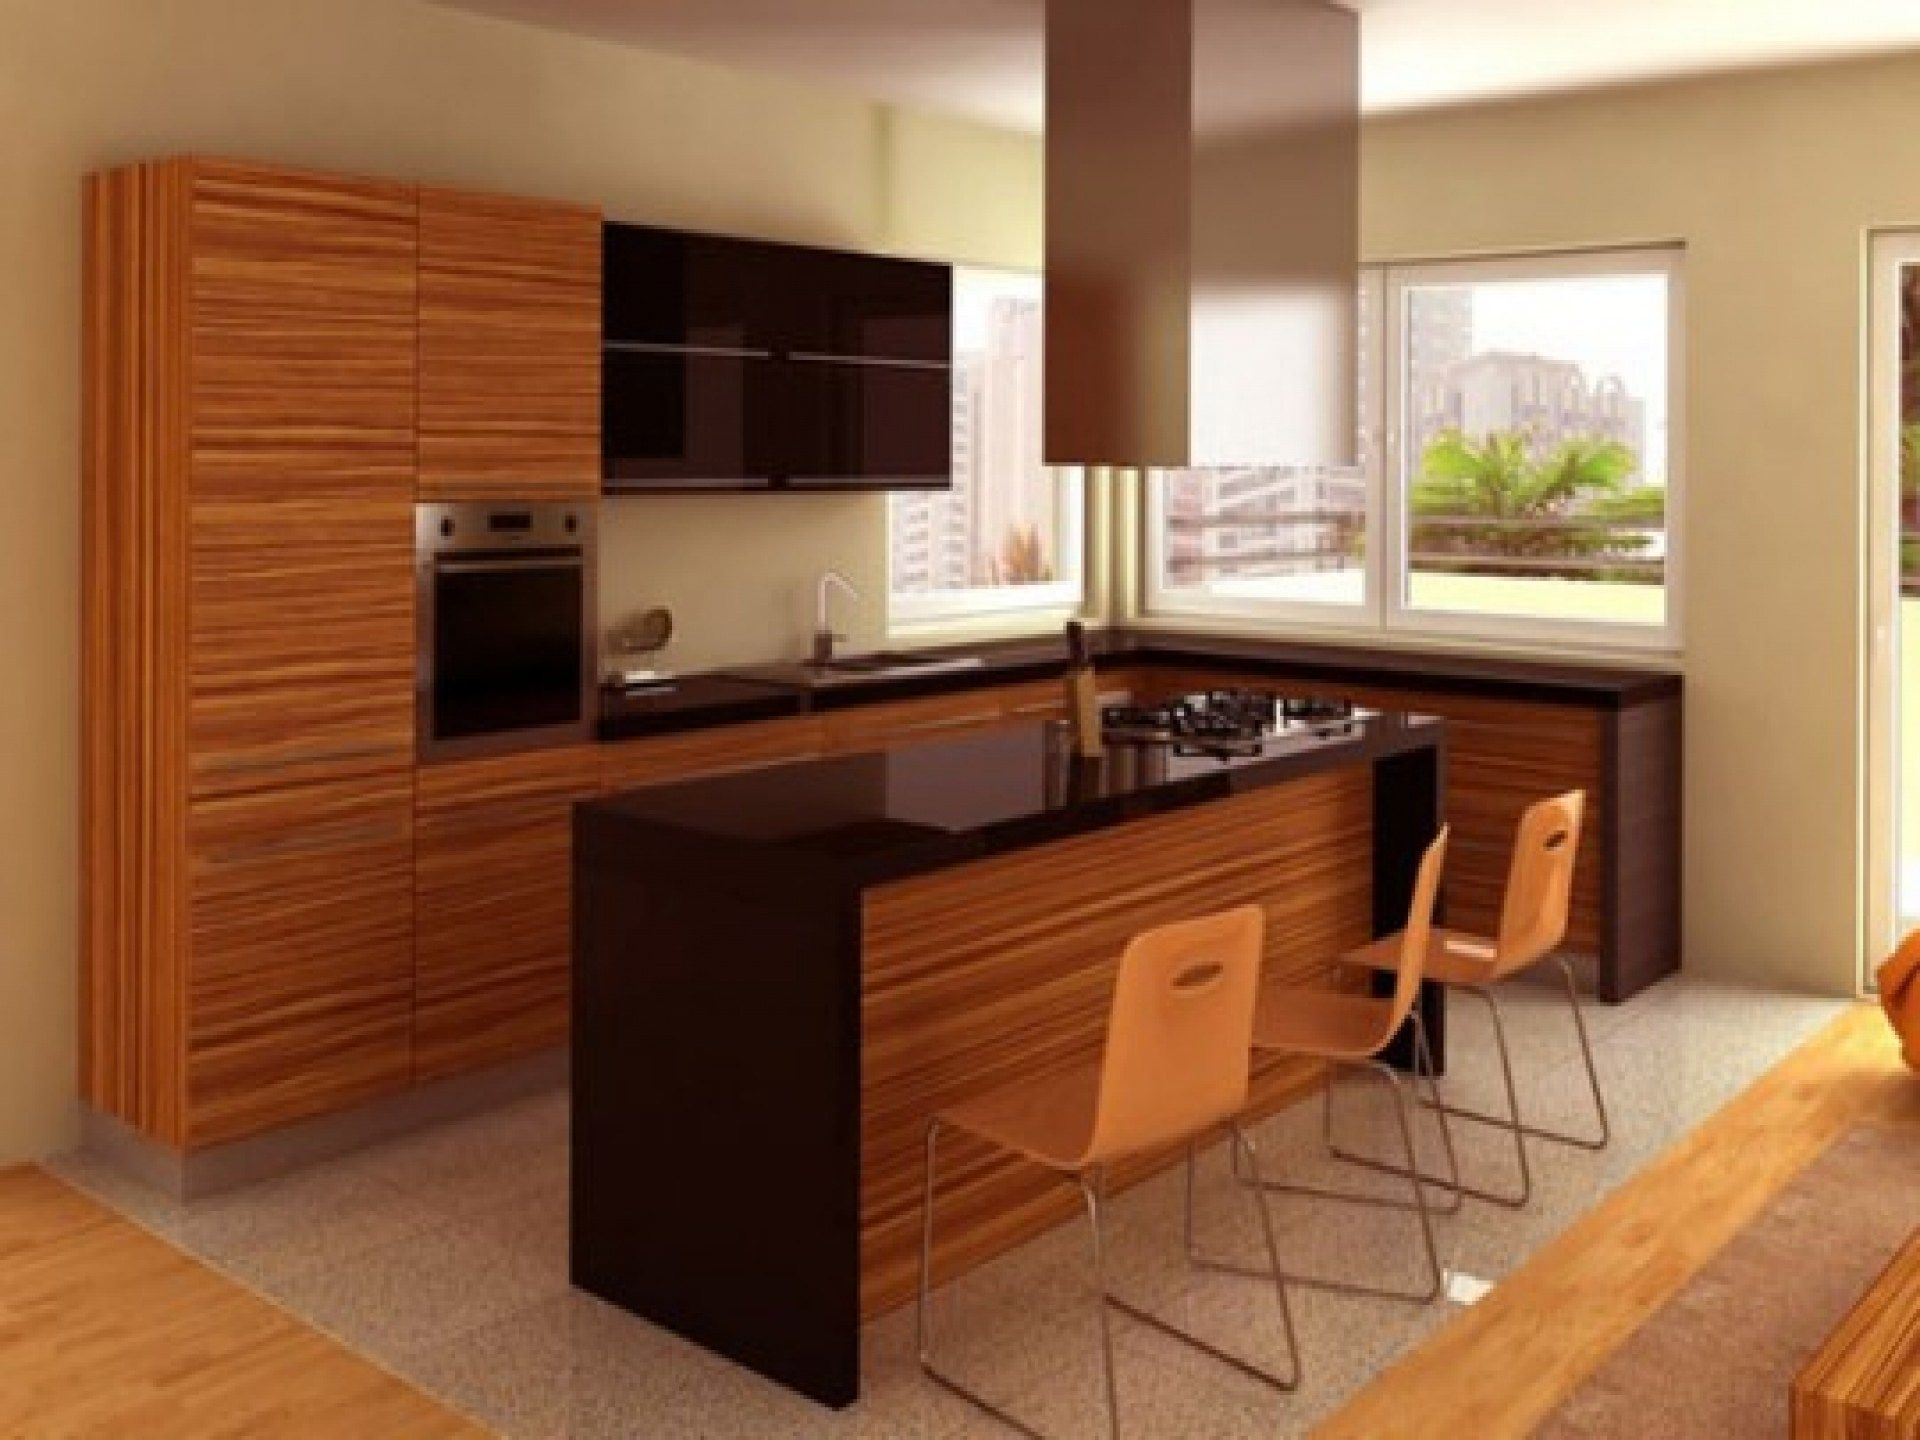 Seating kitchen cabinets design kitchen island countertop ideas